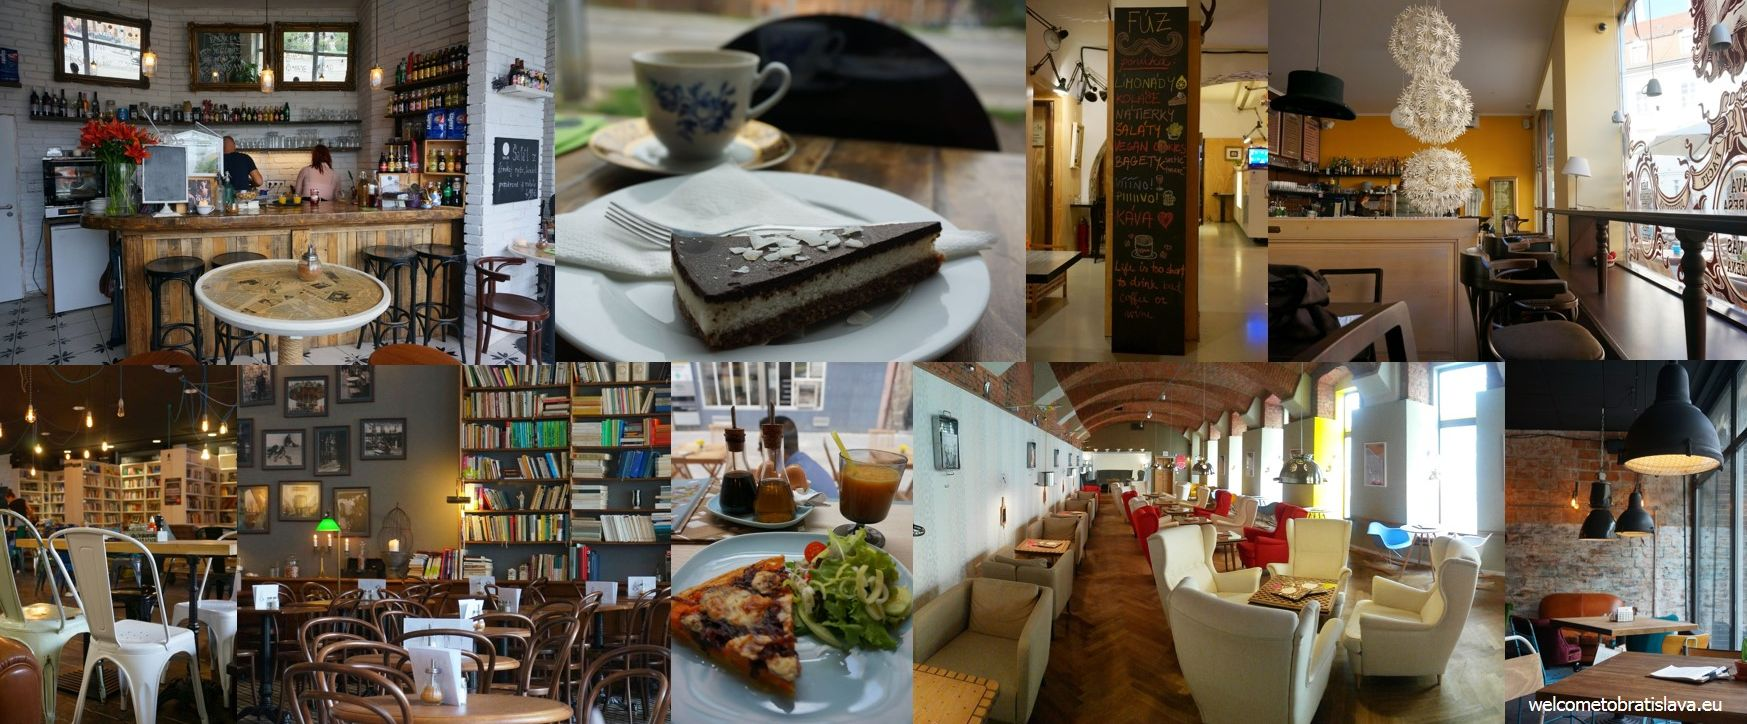 The hipster cafes in Bratislava